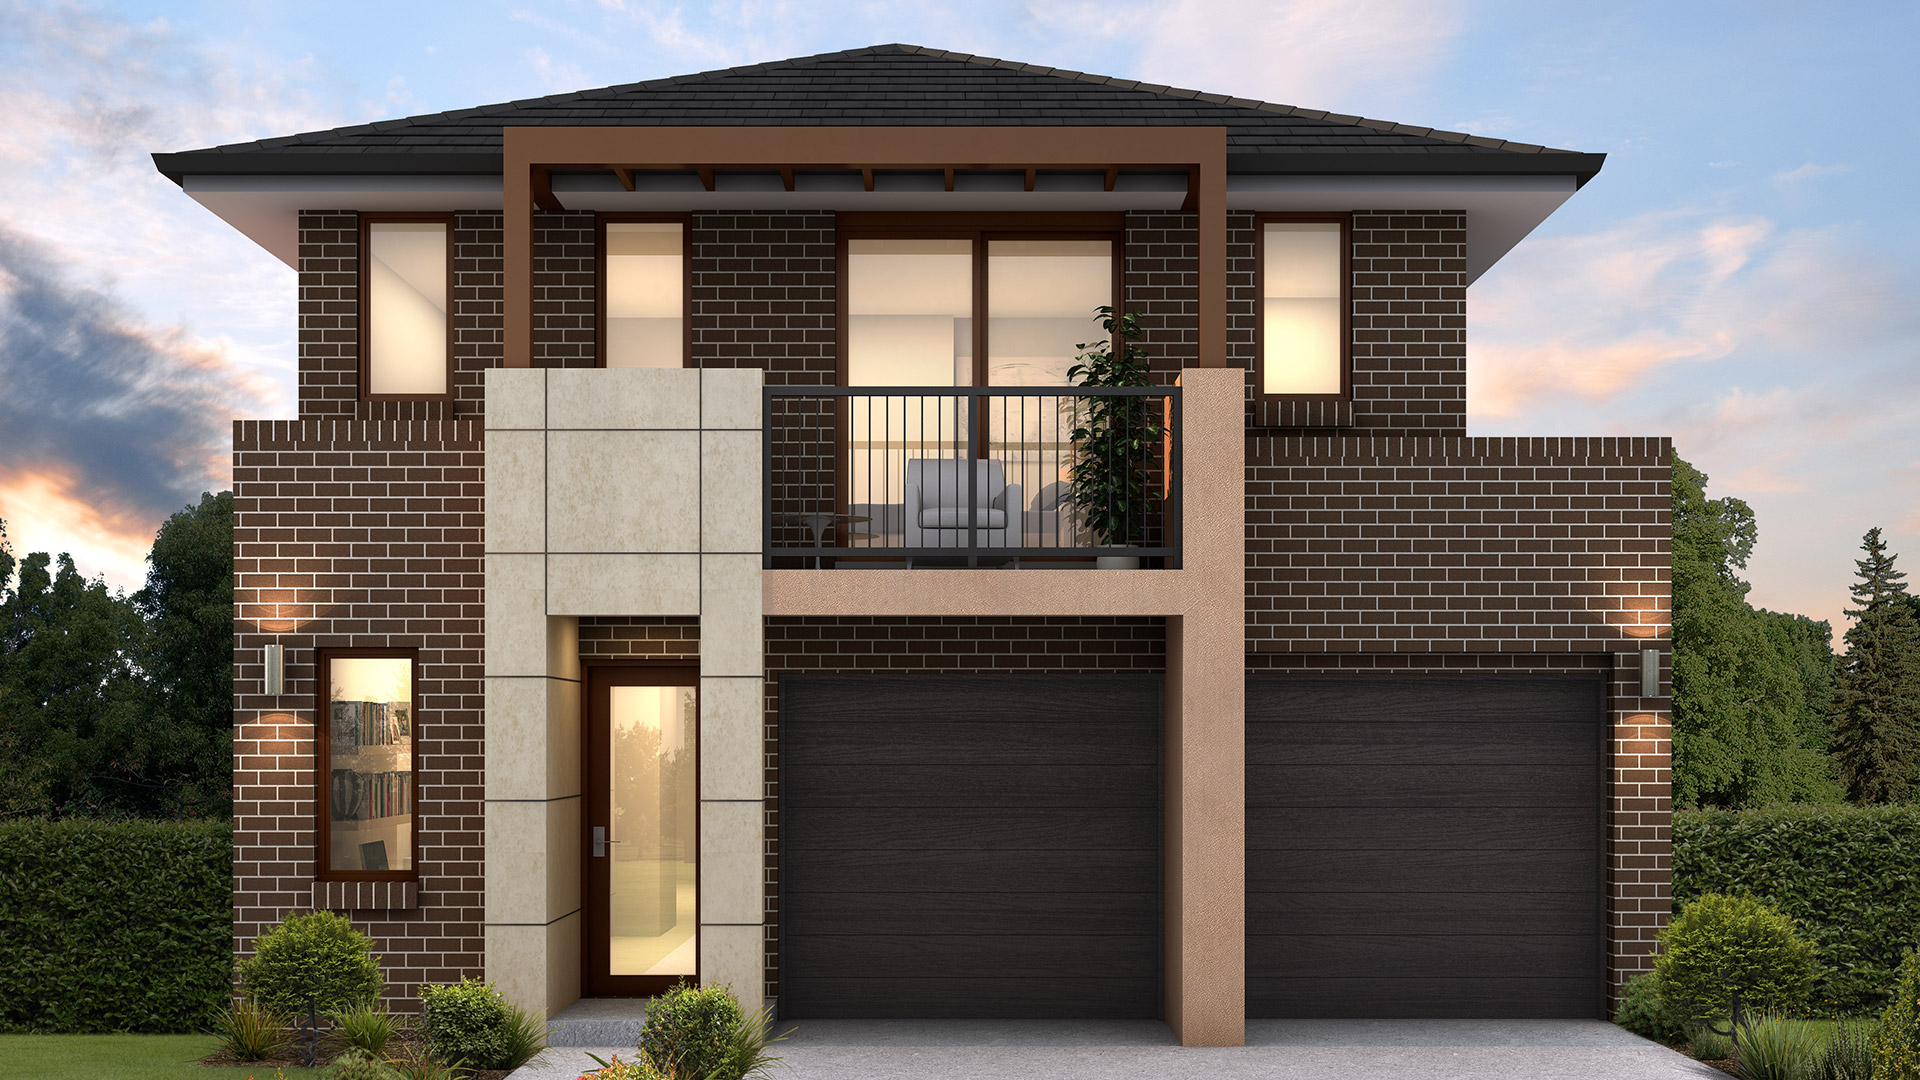 24 Spectacular Two Story Homes Designs Nice Home Decoration Interior